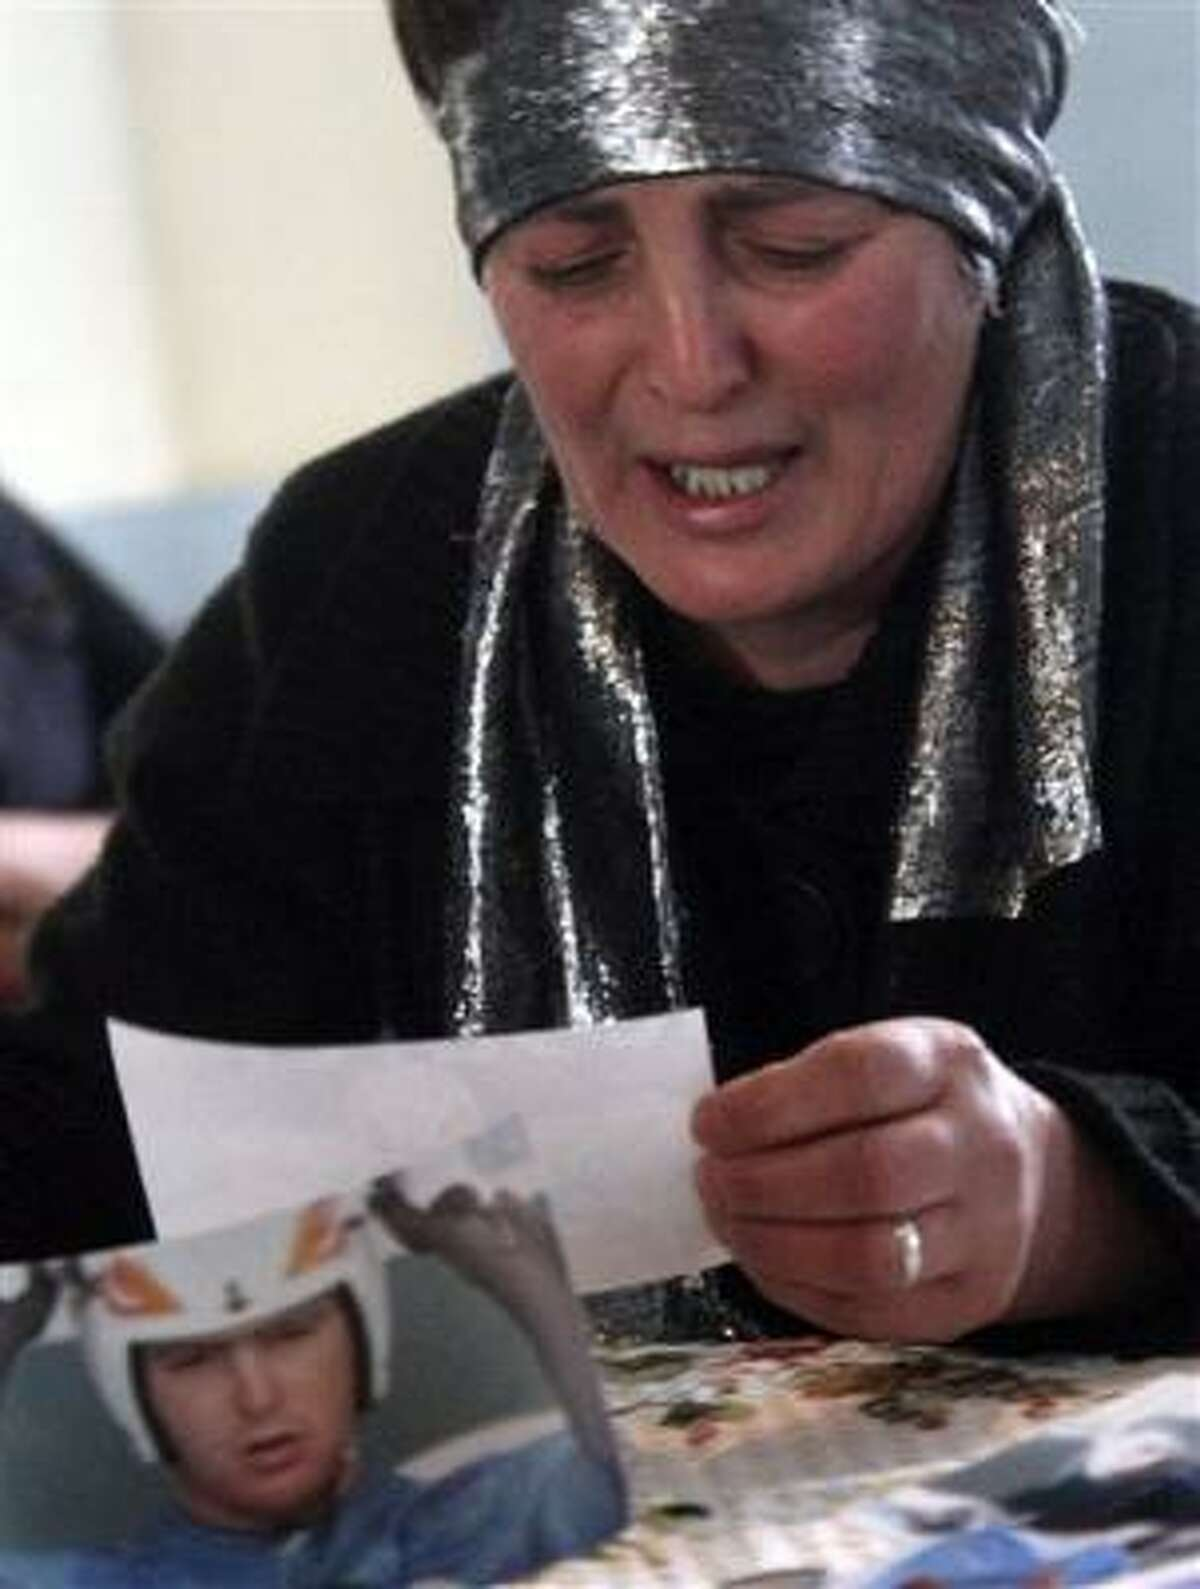 Dodo Kharazishvili, mother of late Georgian olympic luger Nodar Kumaritashvili, cries while looking at photos of her son at their home in the town of Bakuriani, a top ski resort in the Caucasus Mountains.